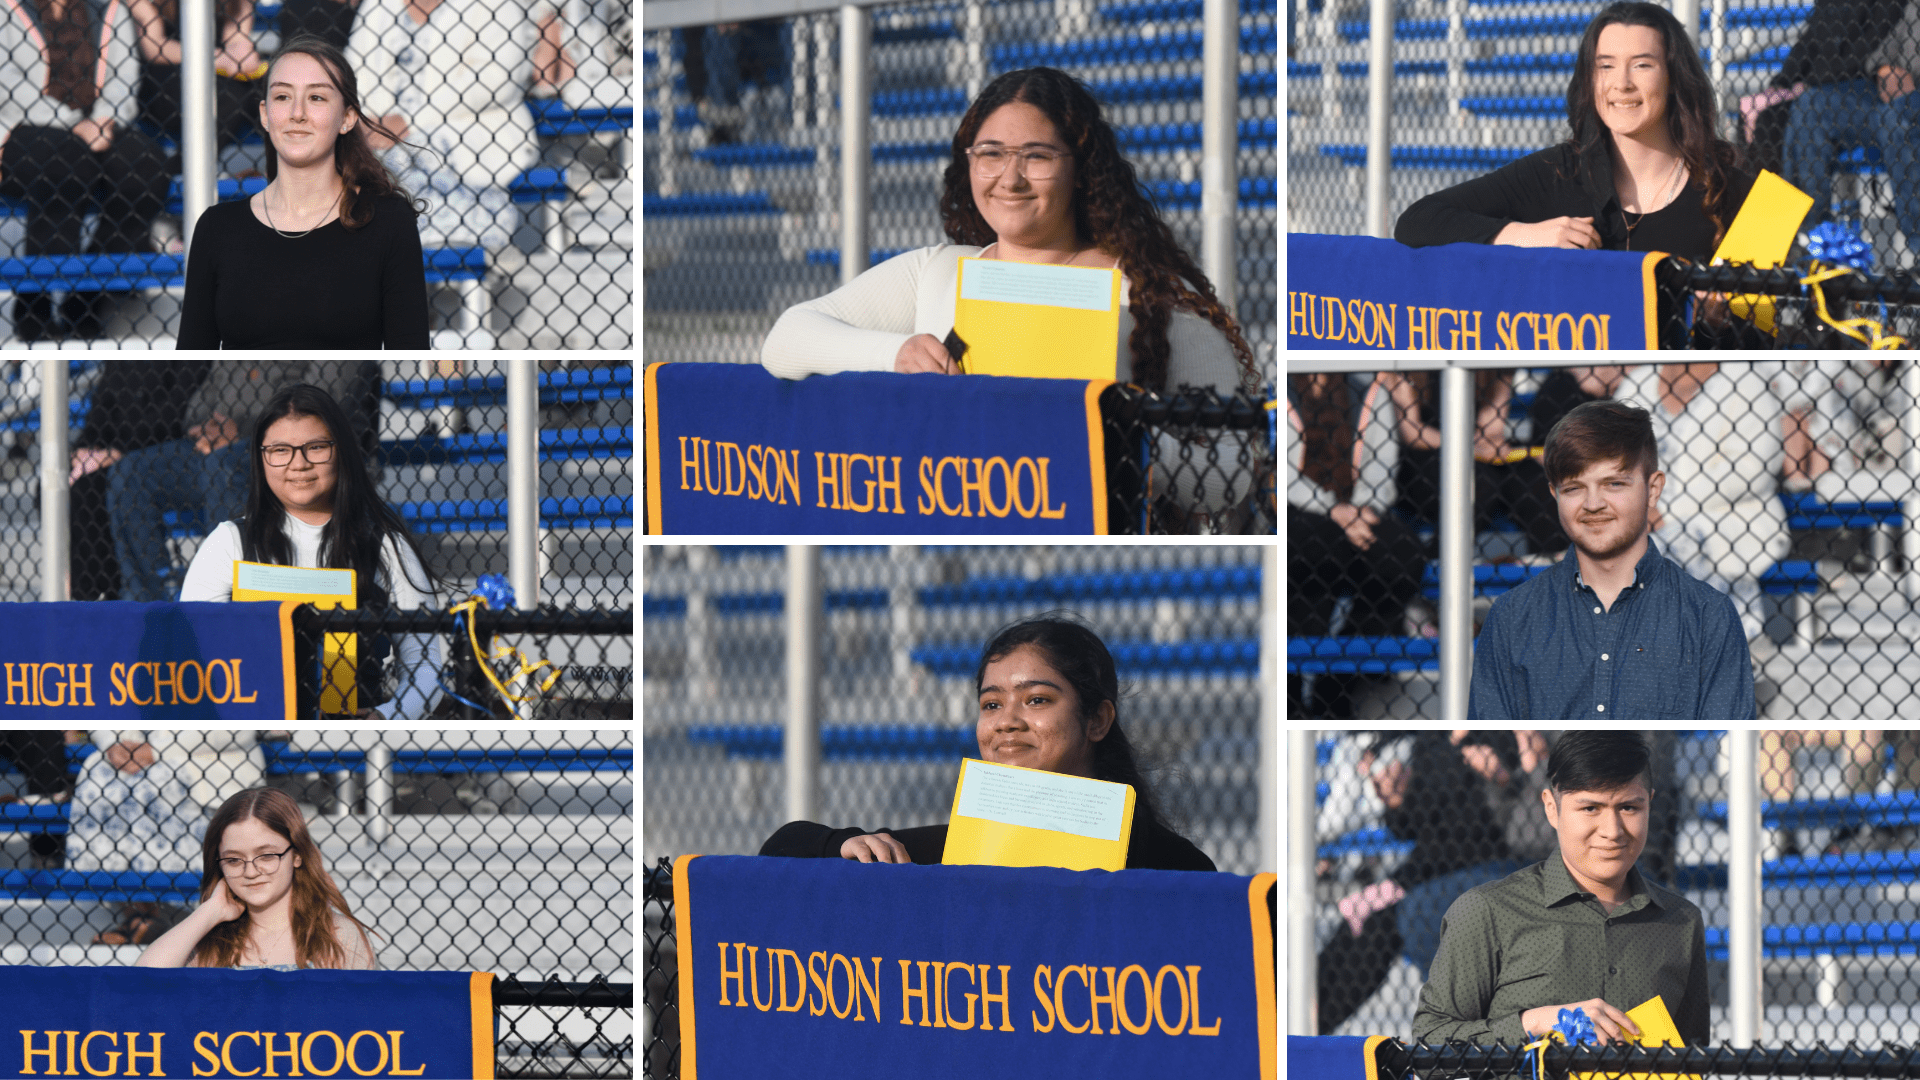 photo grid of eight honor society inductees standing in front of a fence and Hudson High School banner